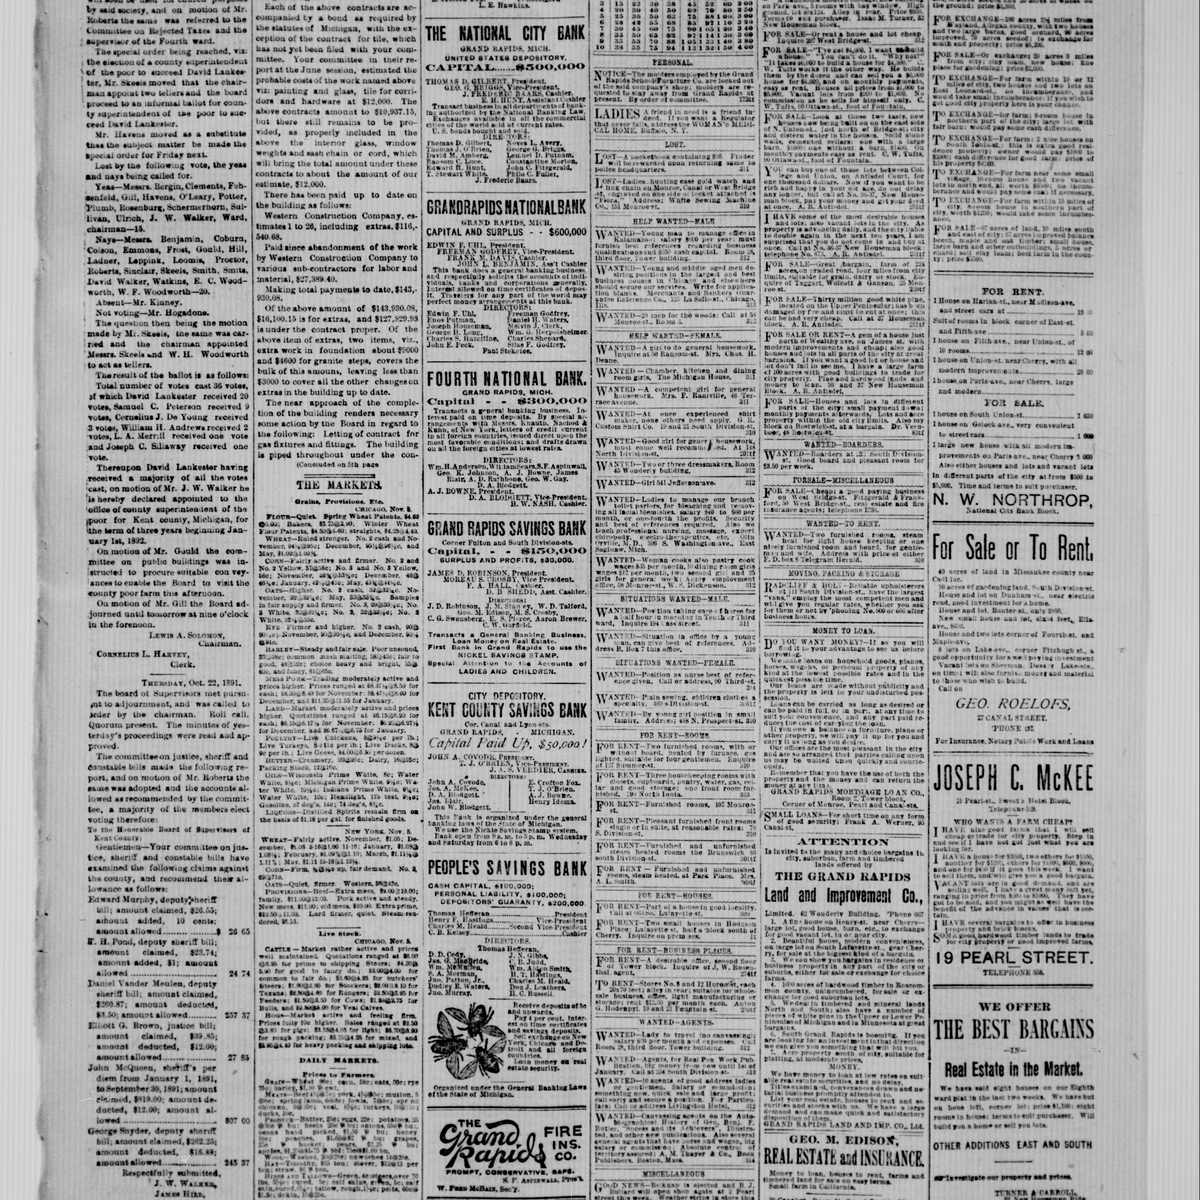 The Telegram Herald, 1891-11-06, page 3